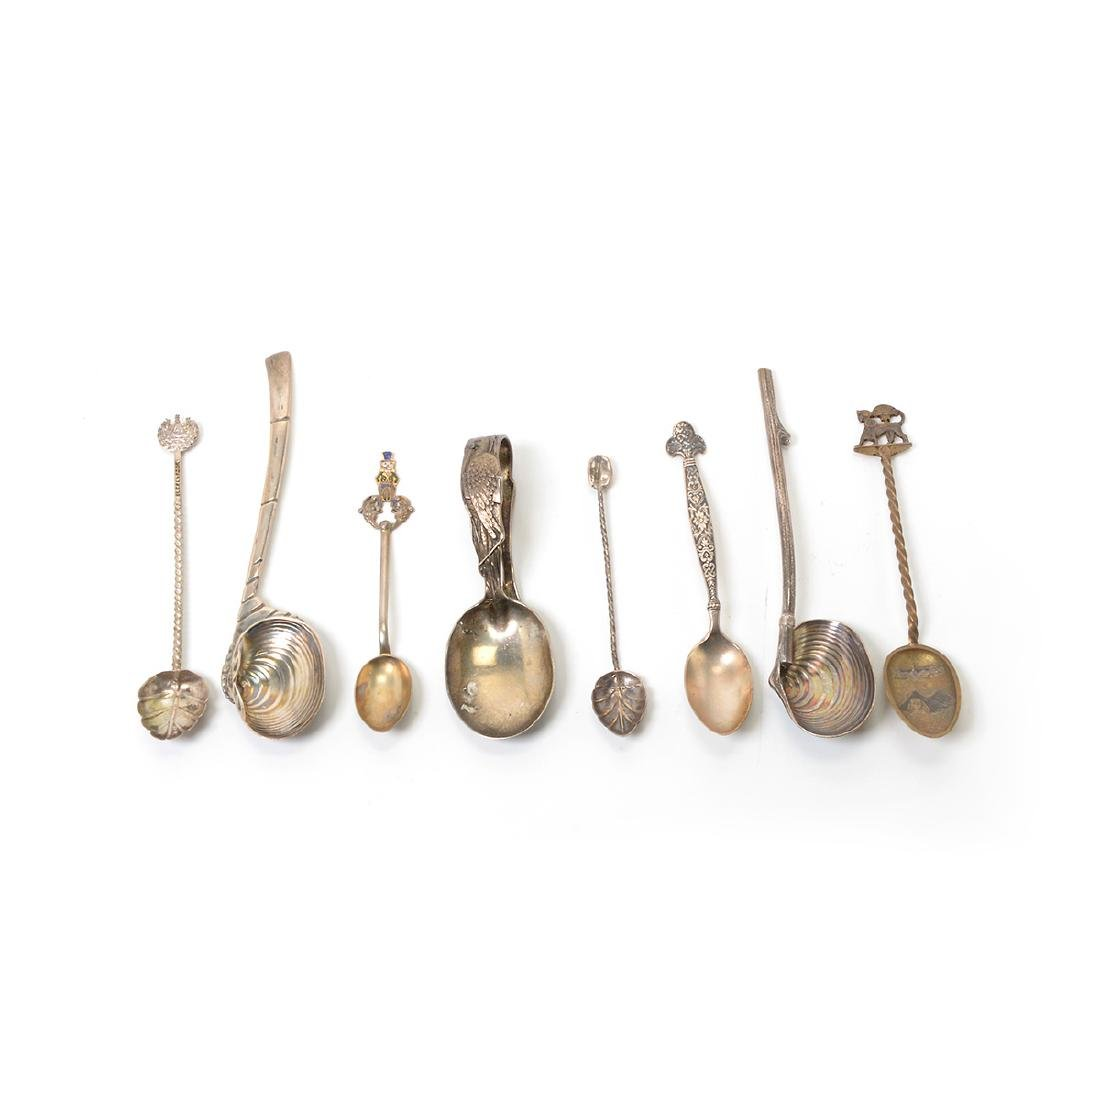 Collection of Chinoiserie and Egyptian Revival Spoons - 3